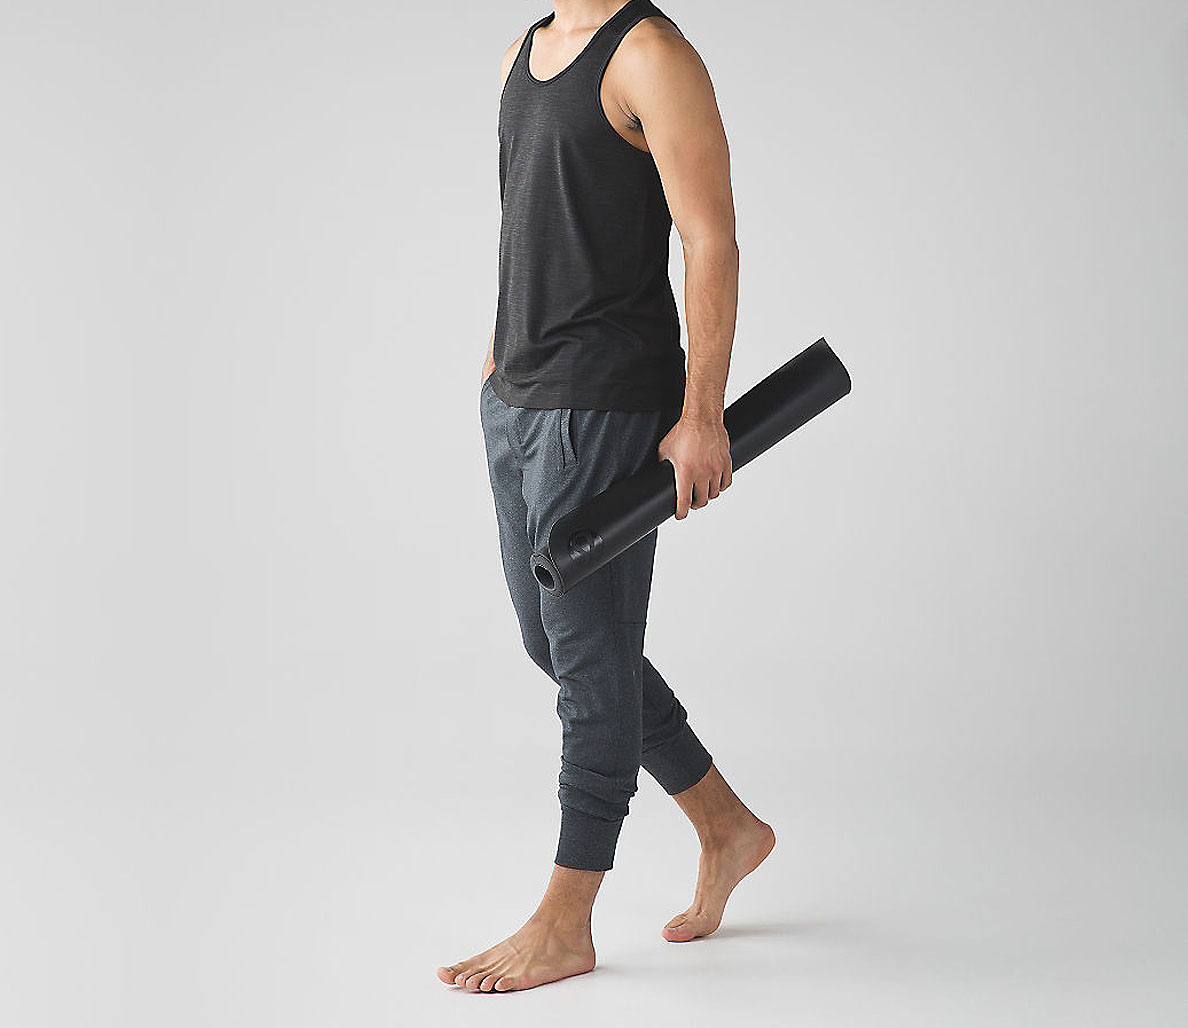 The Best Yoga Pants, Tops, and More for Men   Men's Journal